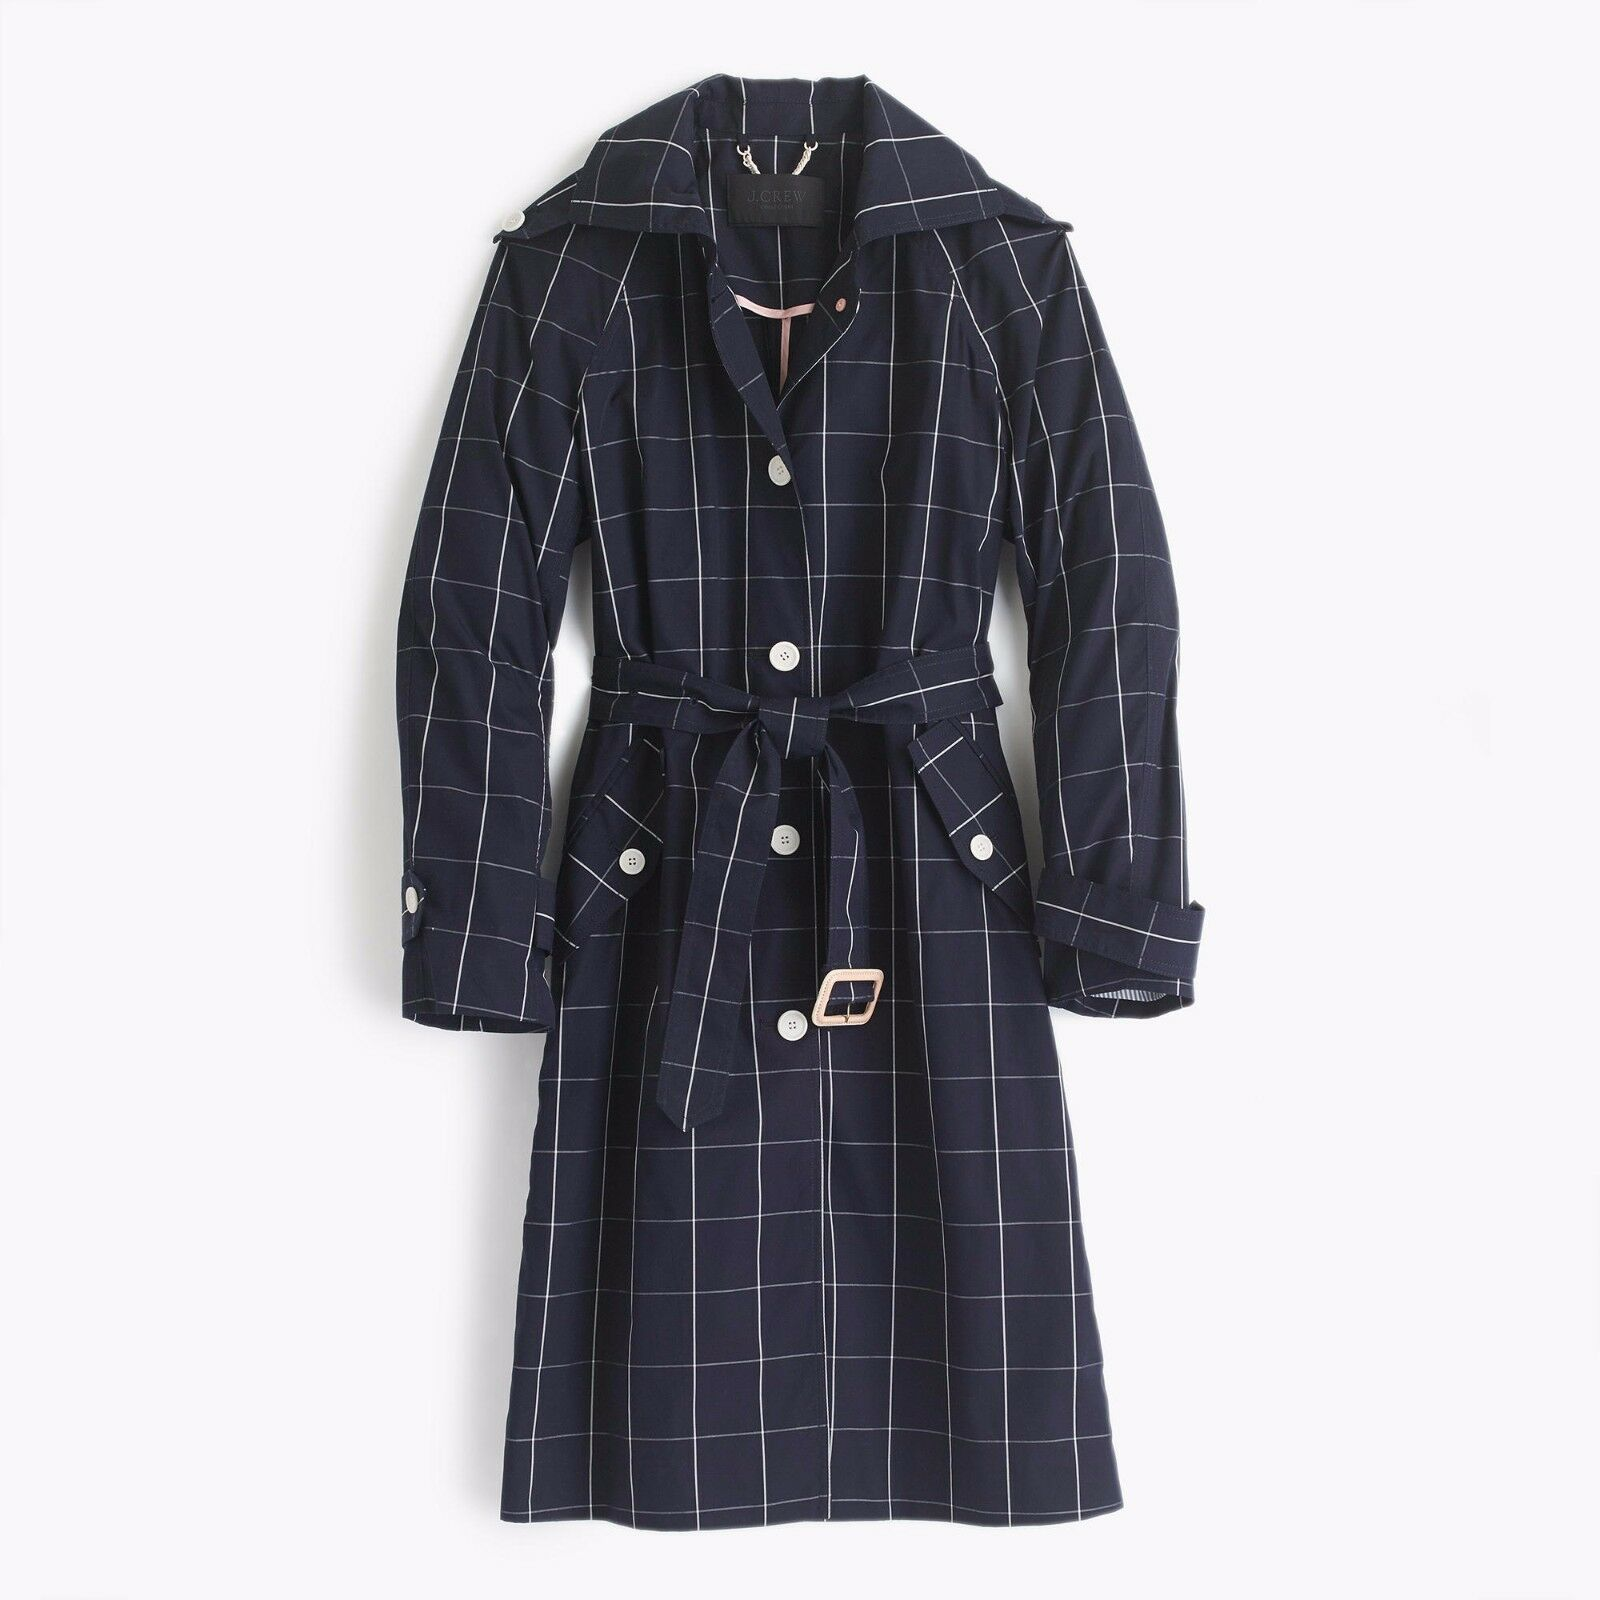 d08e8f5ab5d New J.Crew Belted COAT Navy Windowpane 0 G2383 J Crew TRENCH Collection  narrac6446-Coats